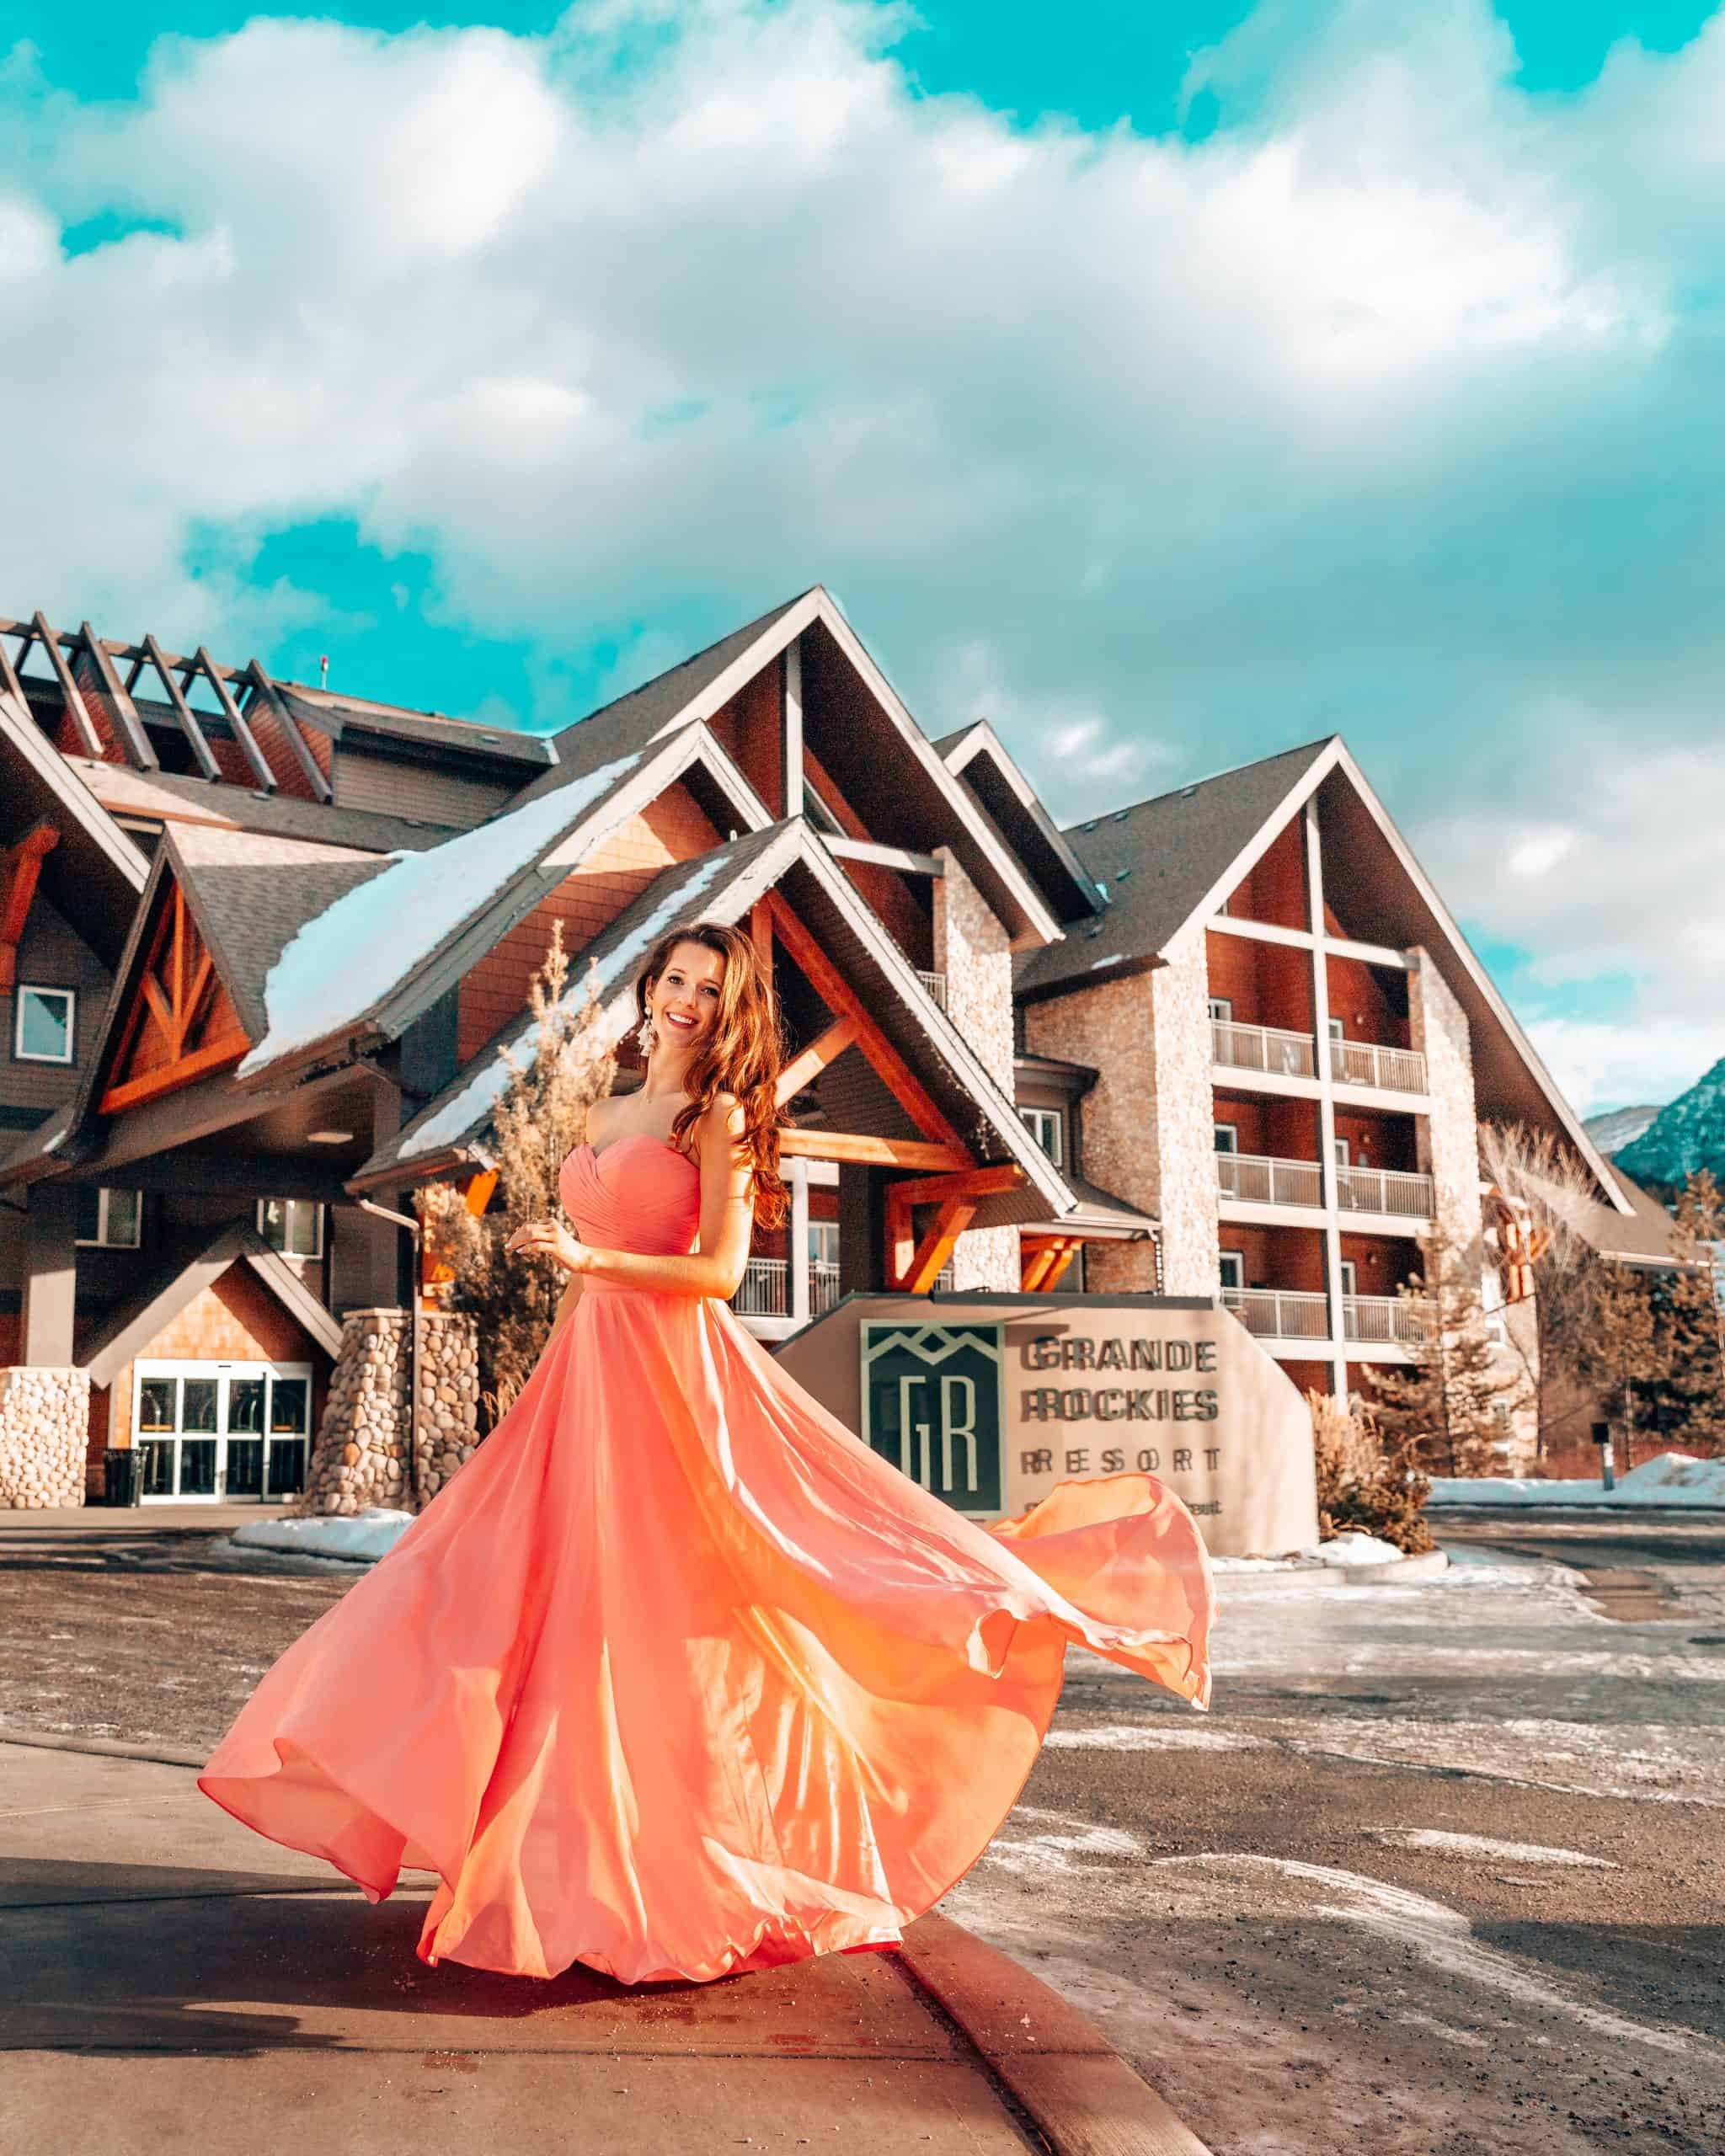 Girl twirling at Grande Rockies Resort Canmore - The Next Trip